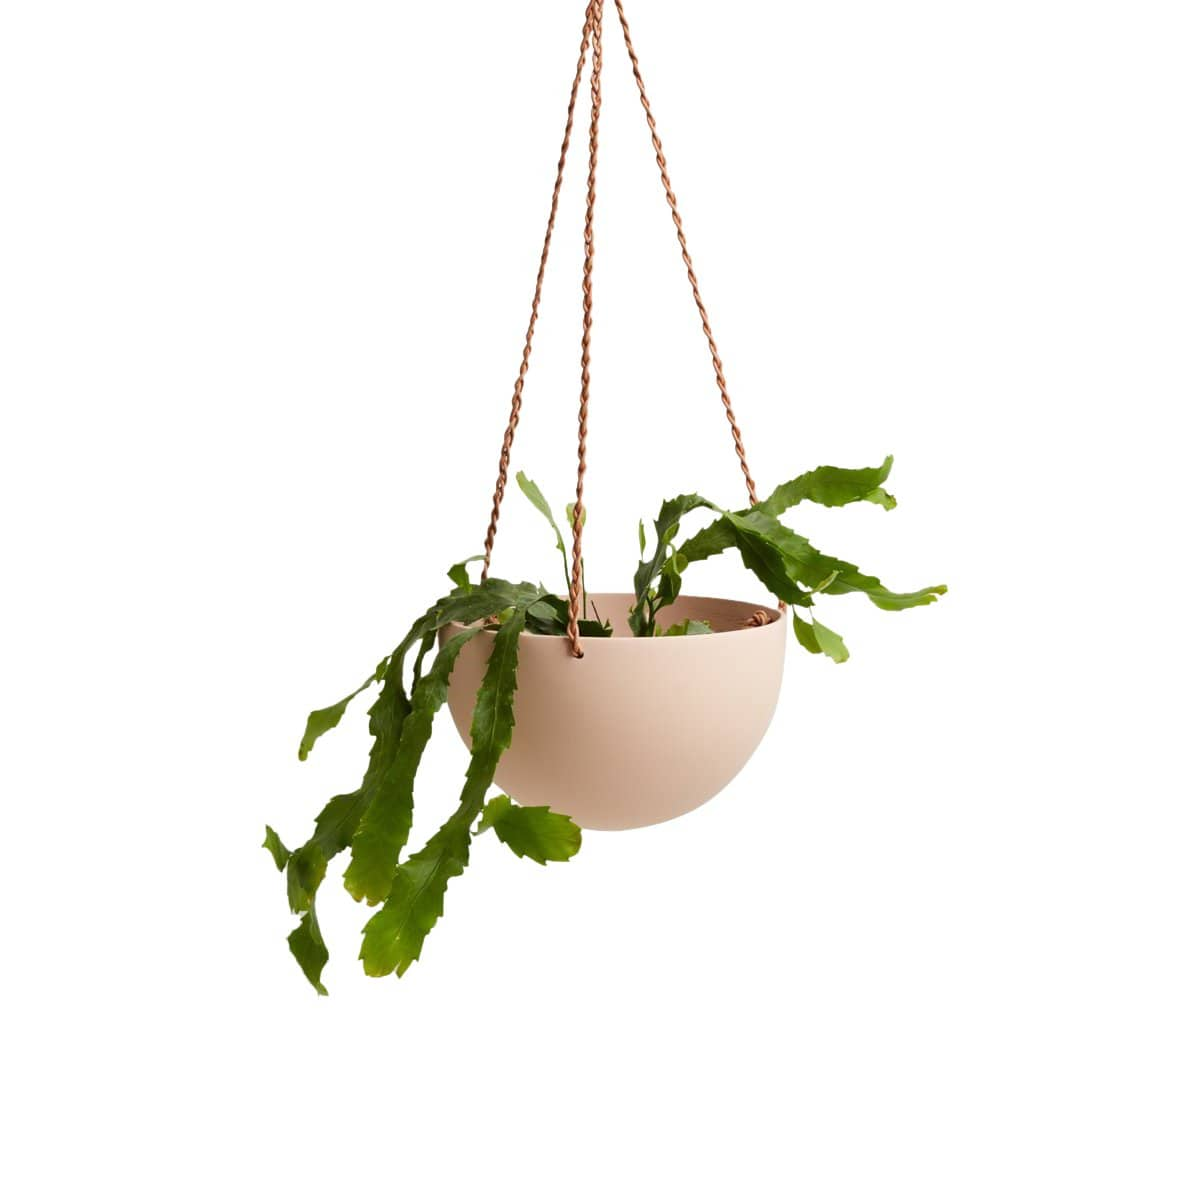 Capra Designs Planters, Pots + Vases Salt Block Color Dome Hanging Planter